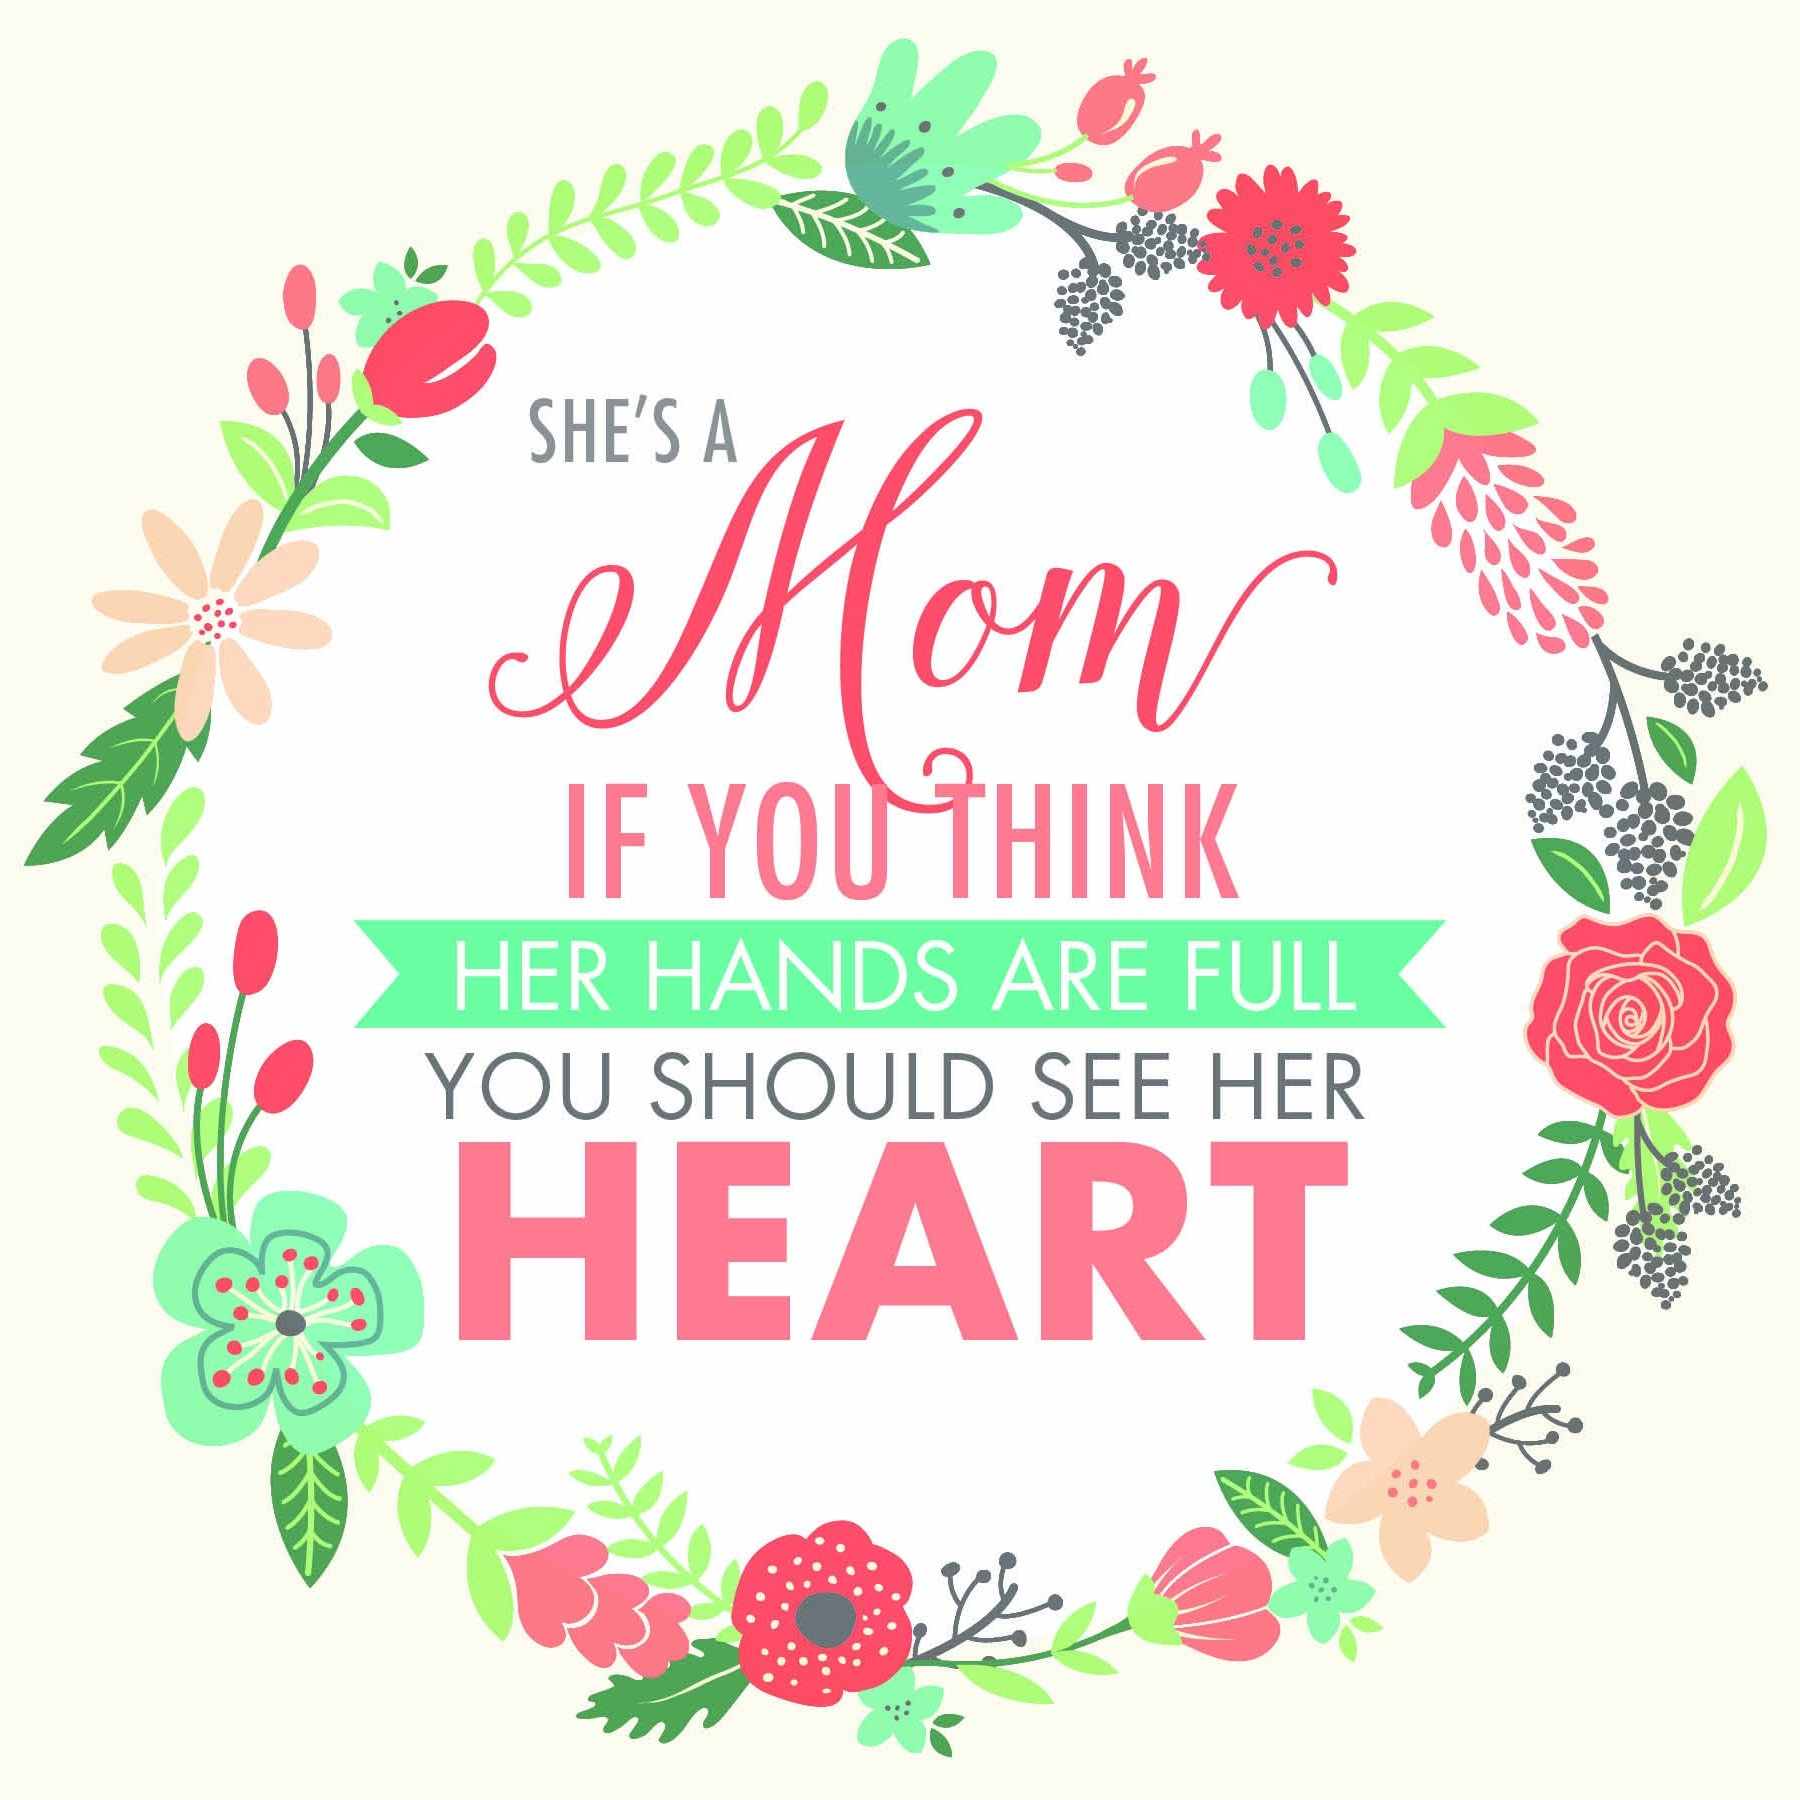 She's a Mom: If You Think Her Hands Are Full, You Should See Her Heart, Communications, Covenant